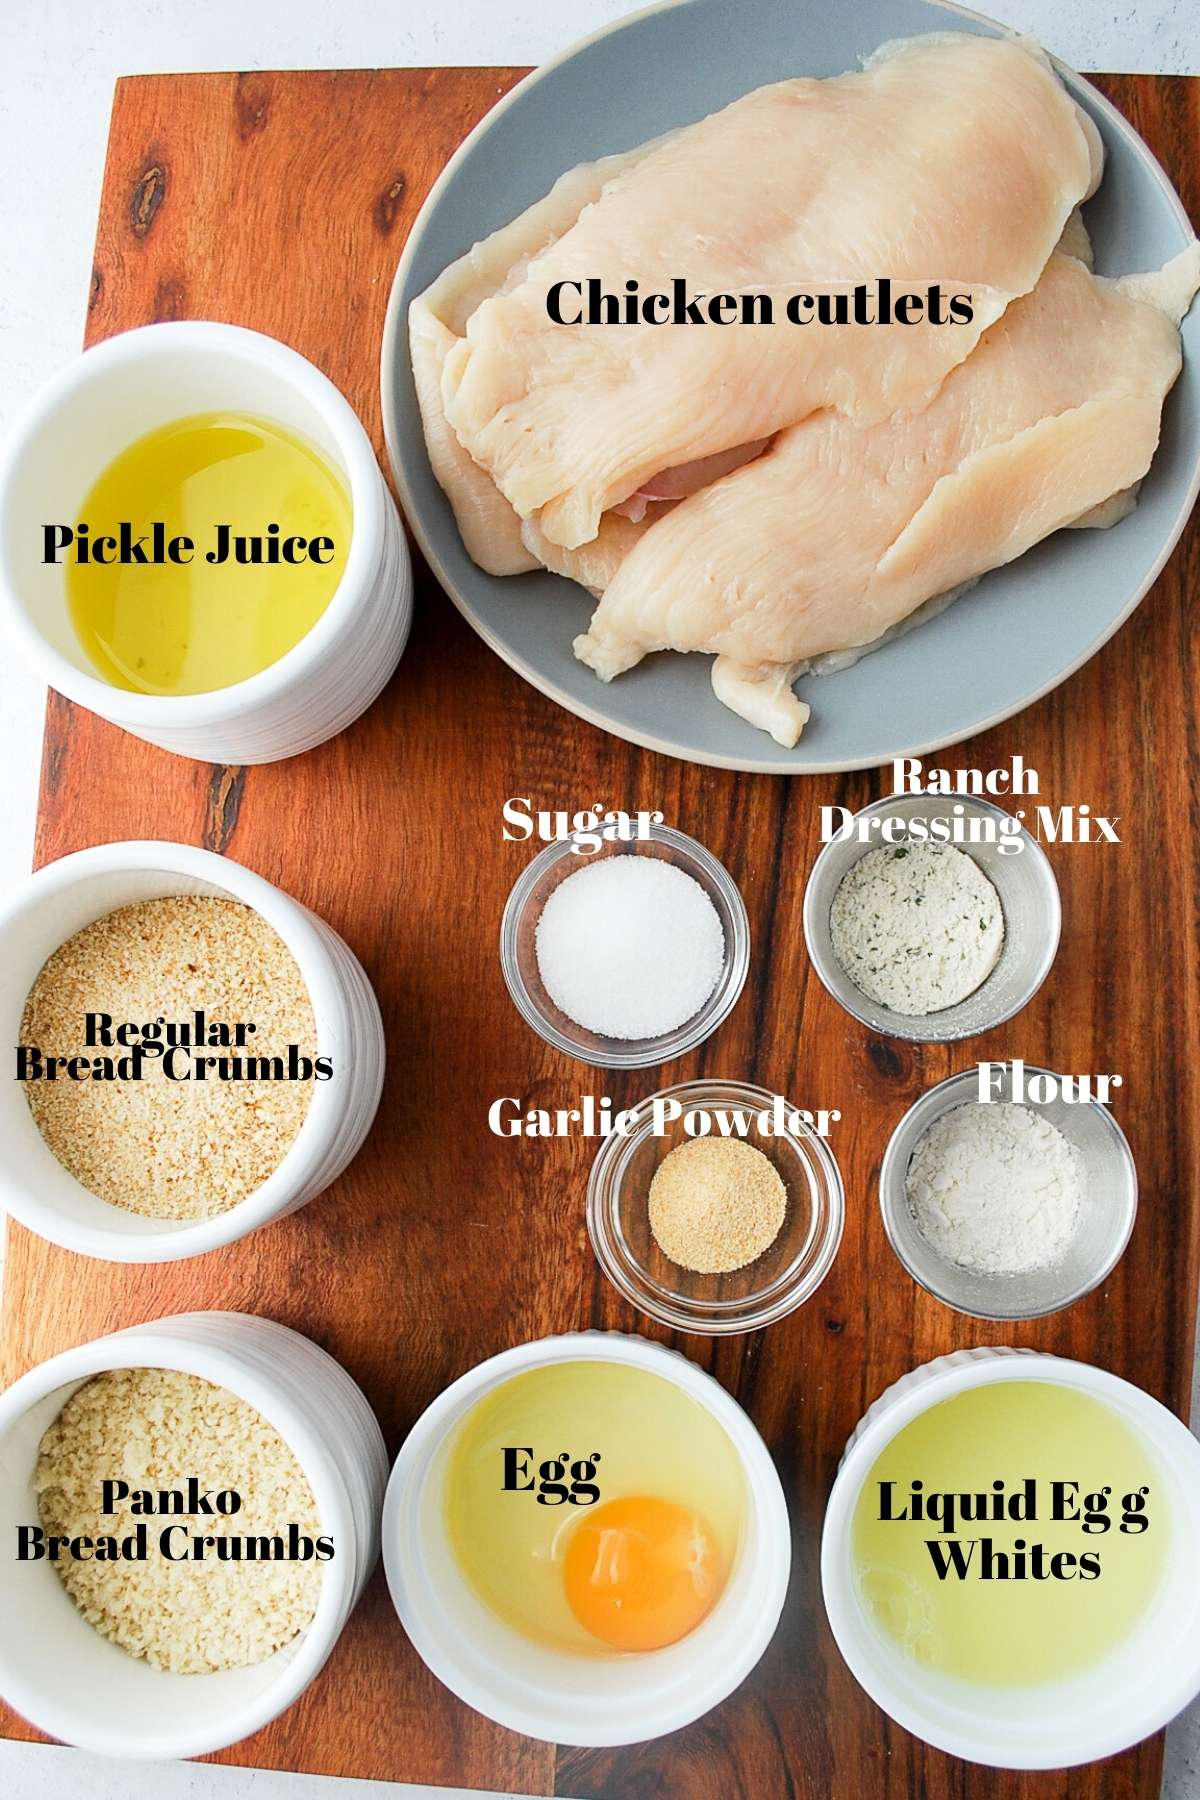 chicken cutlets, pickle juice, bread crumbs, egg, and seasonings for making air fried chicken cutlets on a wood board